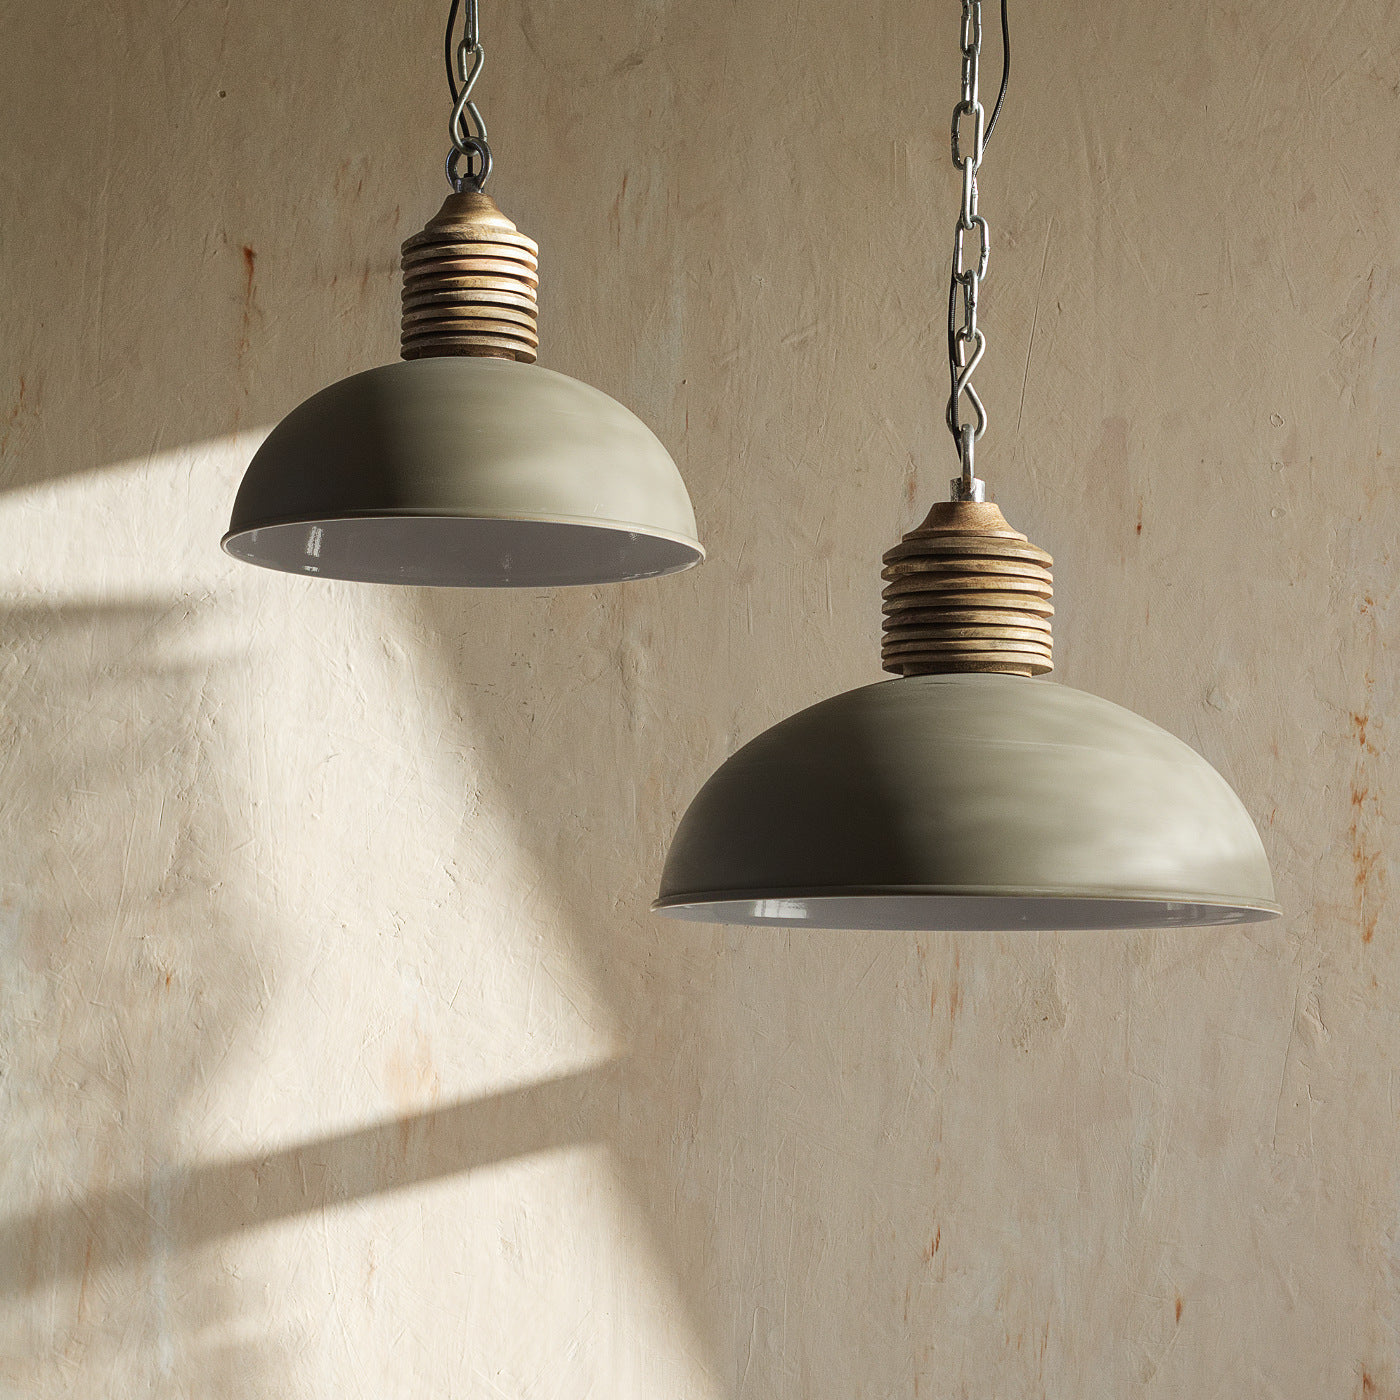 Industrial Lighting, Metal Dome Pendant, Grunge home decor